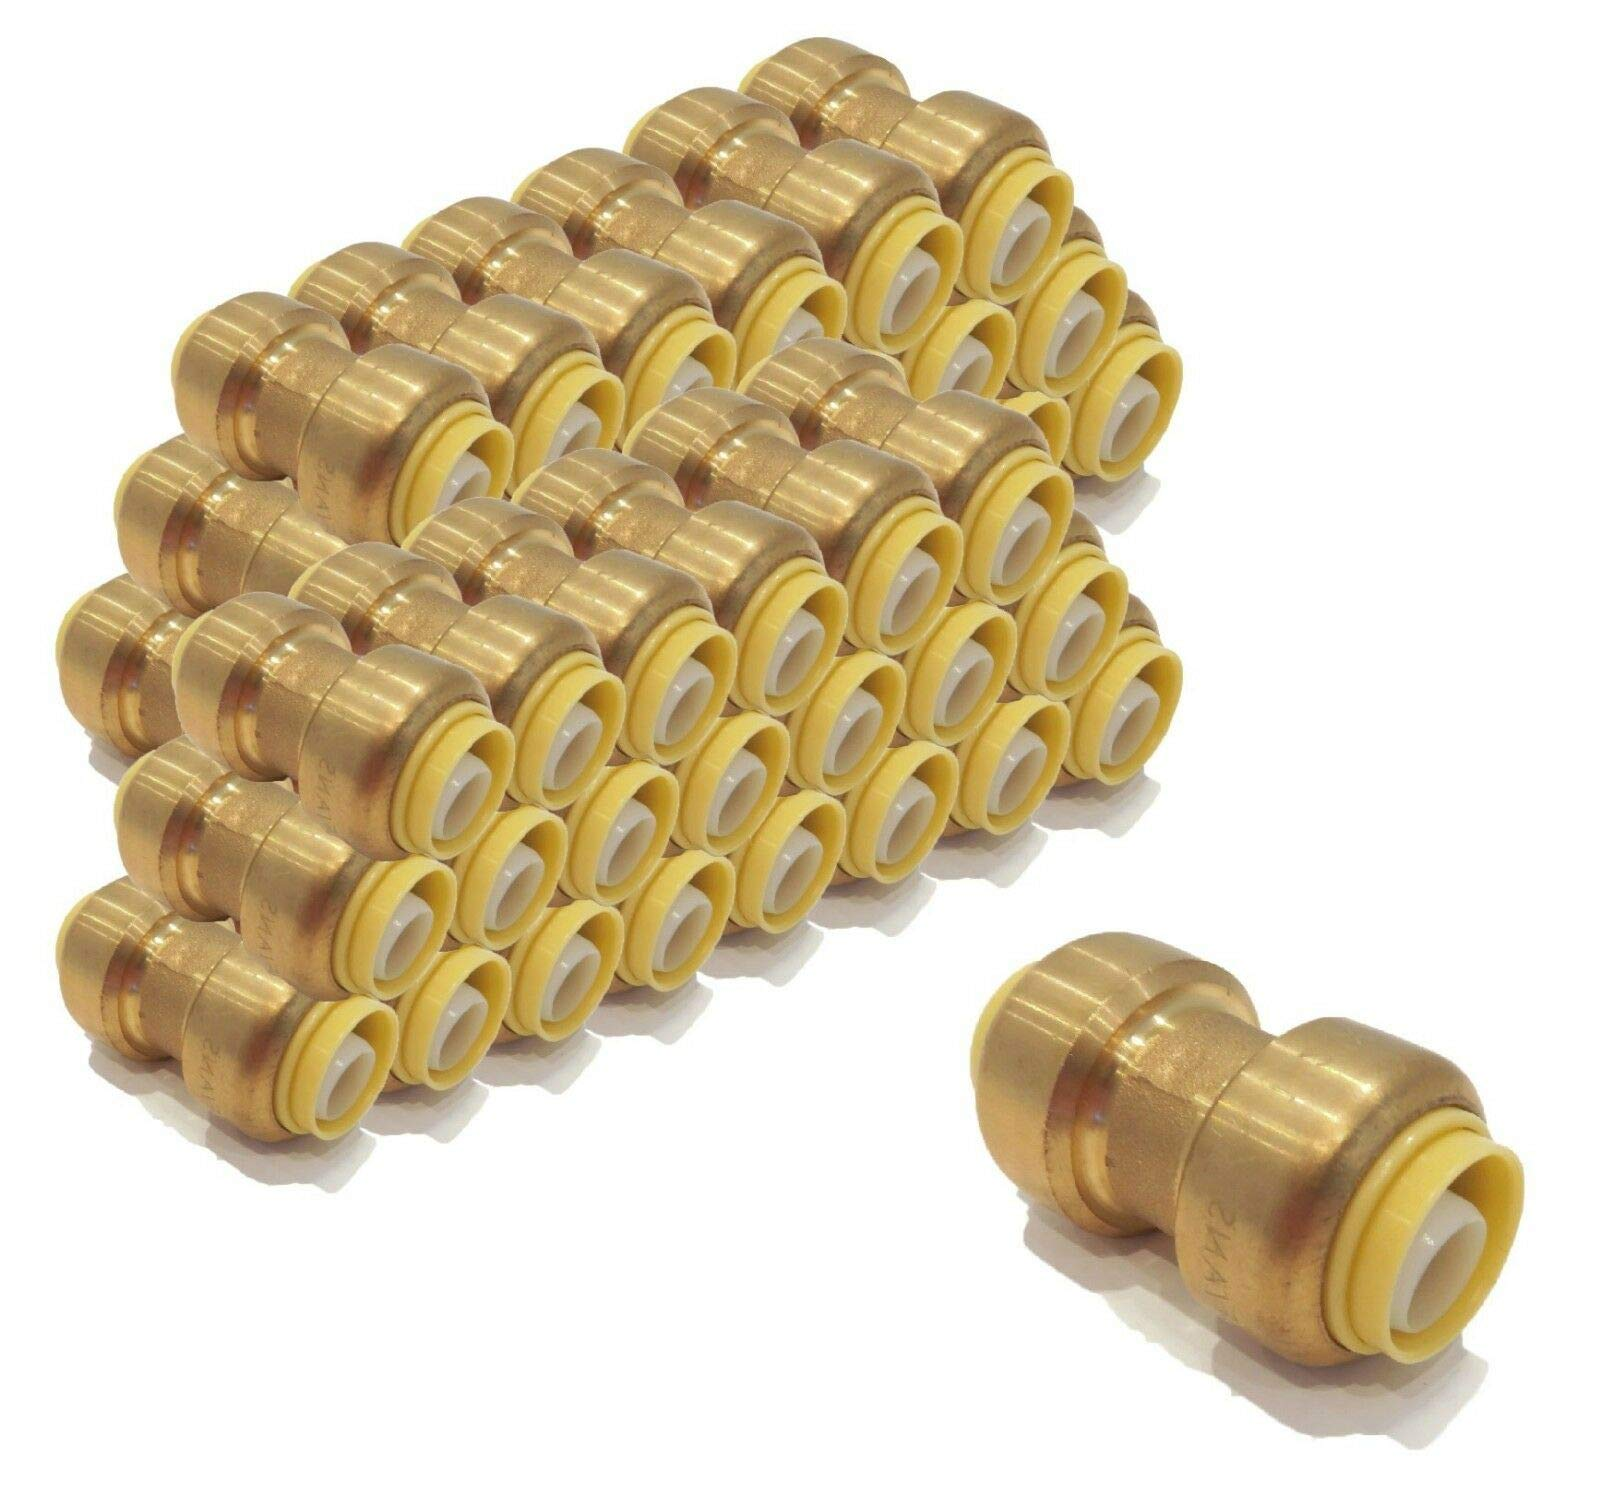 | (Pack of 200) 1/2 inch x 1/2 inch Coupling Connect Fittings, Lead Free Brass by The ROP Shop (Image #1)